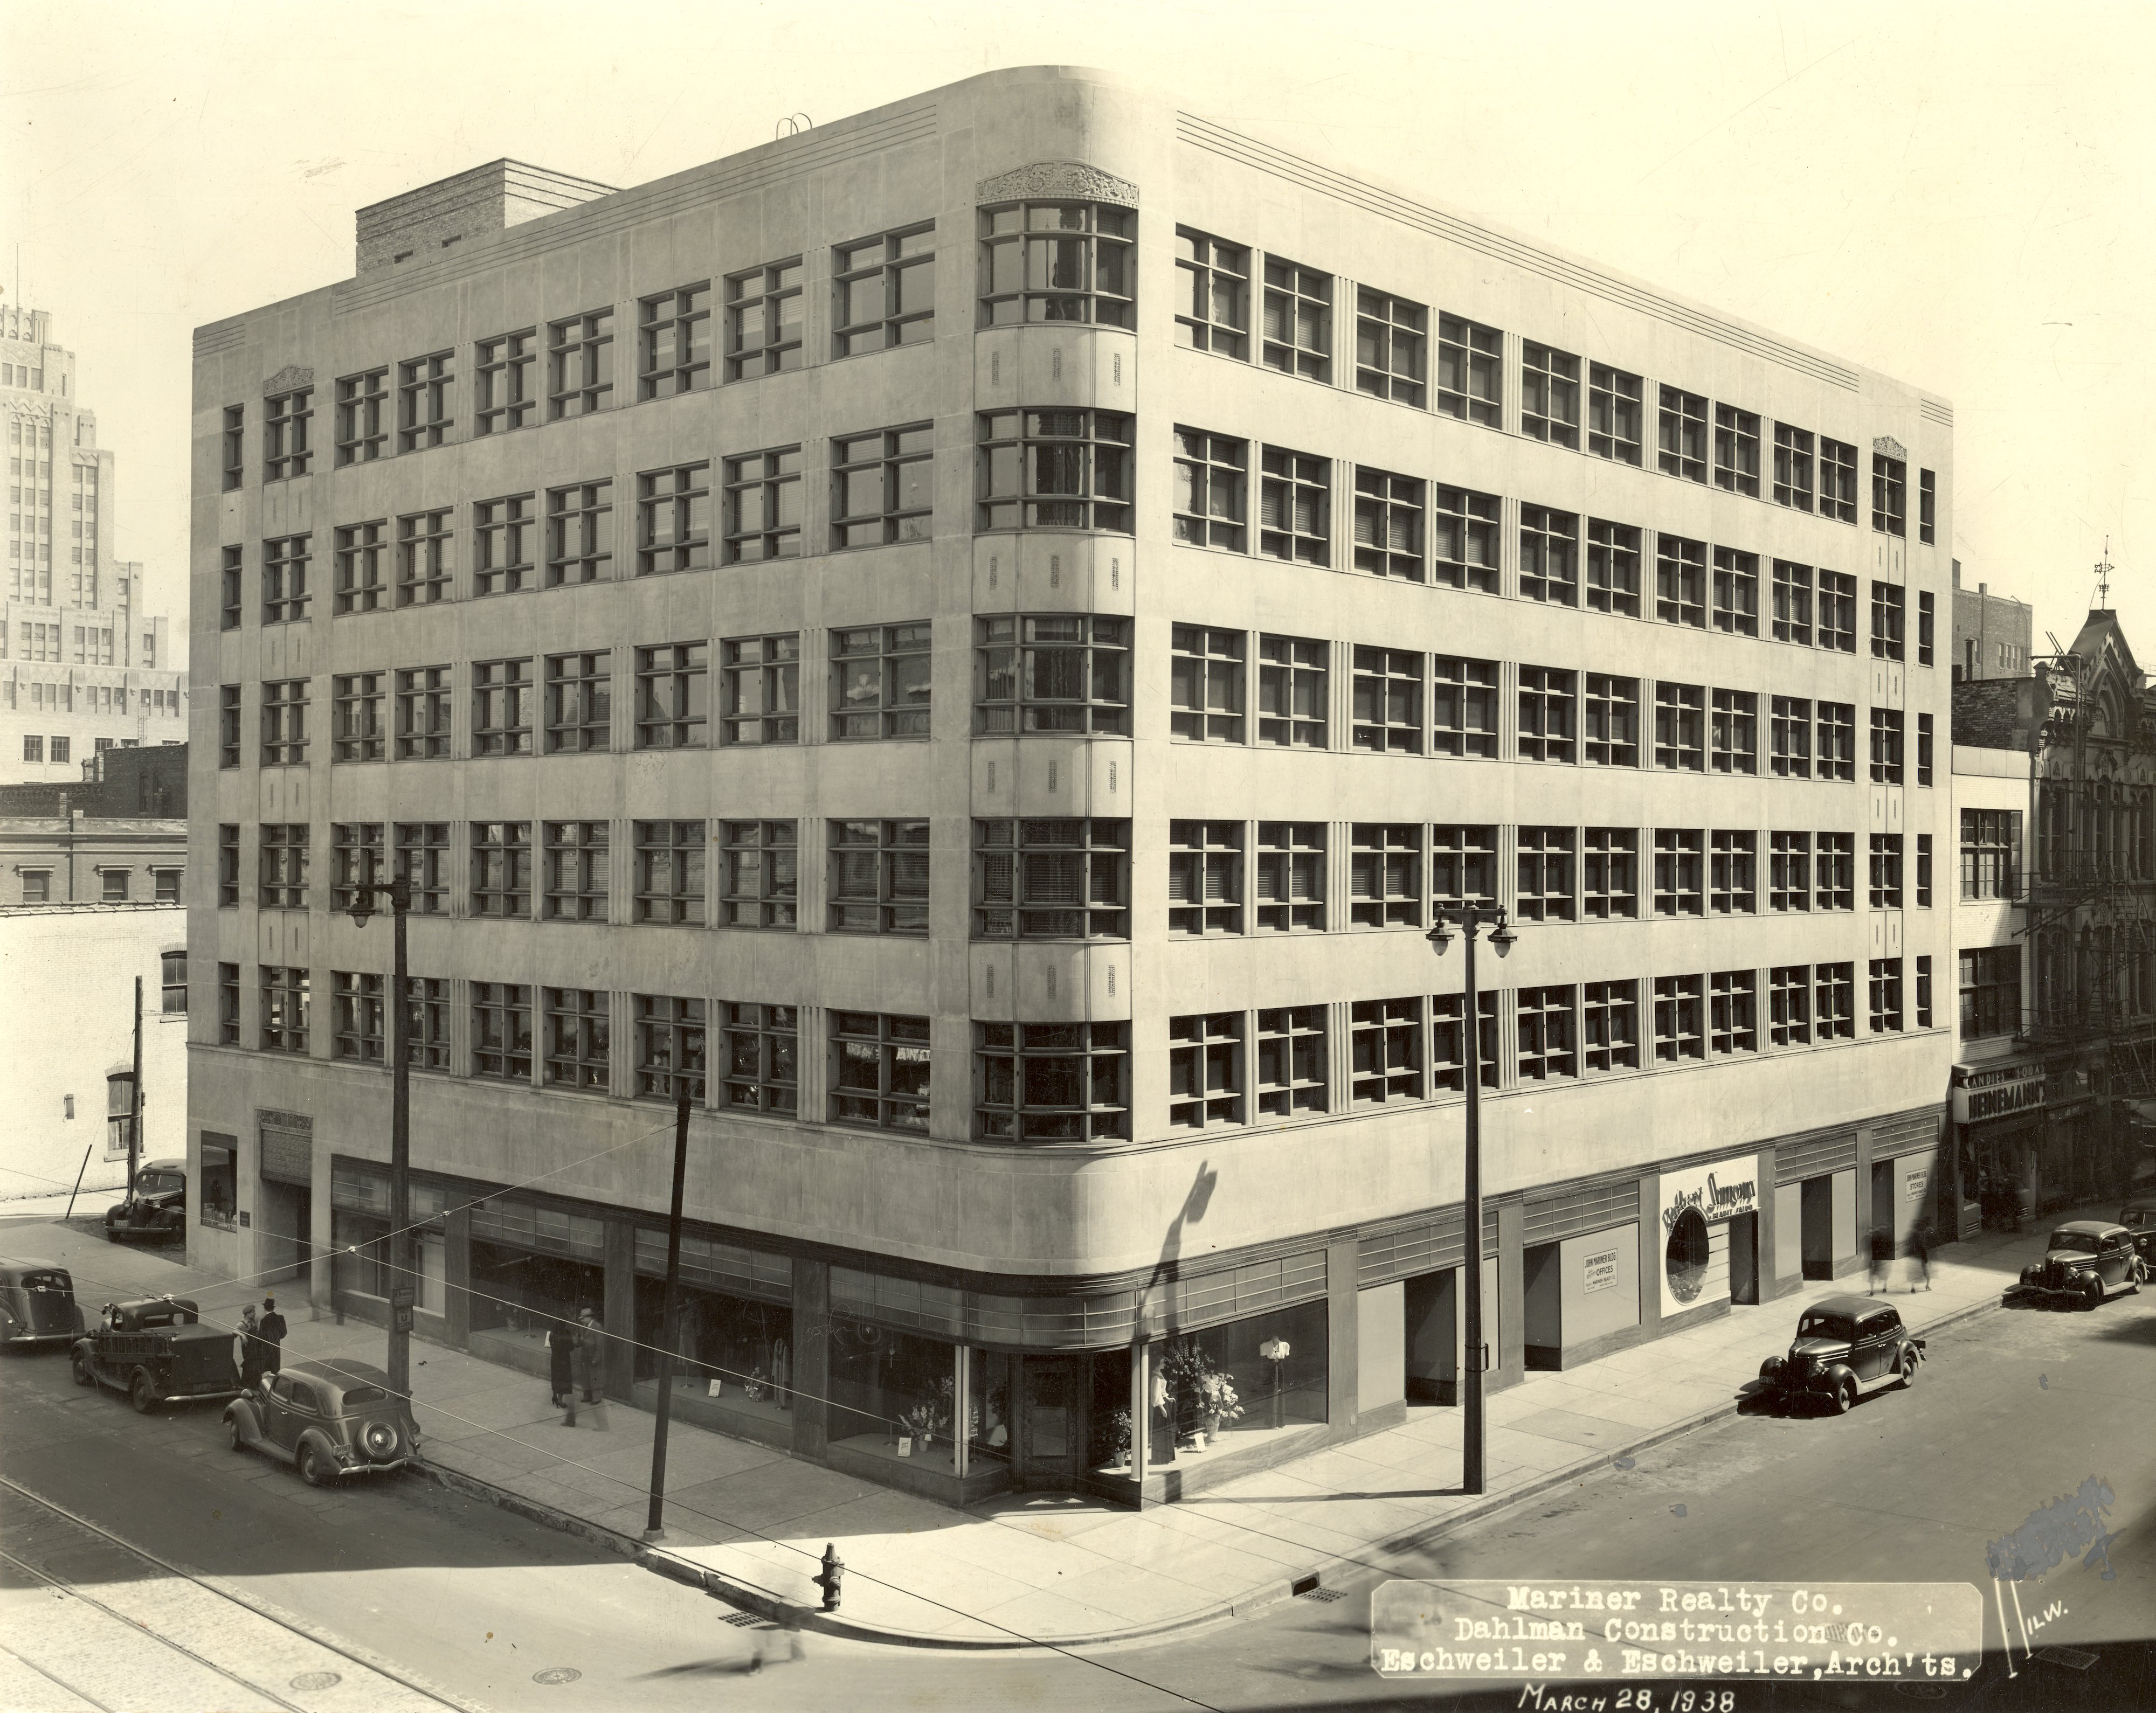 <table class=&quot;lightbox&quot;><tr><td colspan=2 class=&quot;lightbox-title&quot;>John W. Mariner Building</td></tr><tr><td colspan=2 class=&quot;lightbox-caption&quot;>A 1938 photograph of the recently-opened John W. Mariner Building designed by Eschweiler and Eschweiler in a rare example of the Streamline Moderne style.</td></tr><tr><td colspan=2 class=&quot;lightbox-spacer&quot;></td></tr><tr class=&quot;lightbox-detail&quot;><td class=&quot;cell-title&quot;>Source: </td><td class=&quot;cell-value&quot;>From the Historic Photo Collection of the Milwaukee Public Library. Reprinted with permission. <br /><a href=&quot;http://content.mpl.org/cdm/singleitem/collection/HstoricPho/id/1292/rec/1 &quot; target=&quot;_blank&quot;>Milwaukee Public Library</a></td></tr><tr class=&quot;filler-row&quot;><td colspan=2>&nbsp;</td></tr></table>